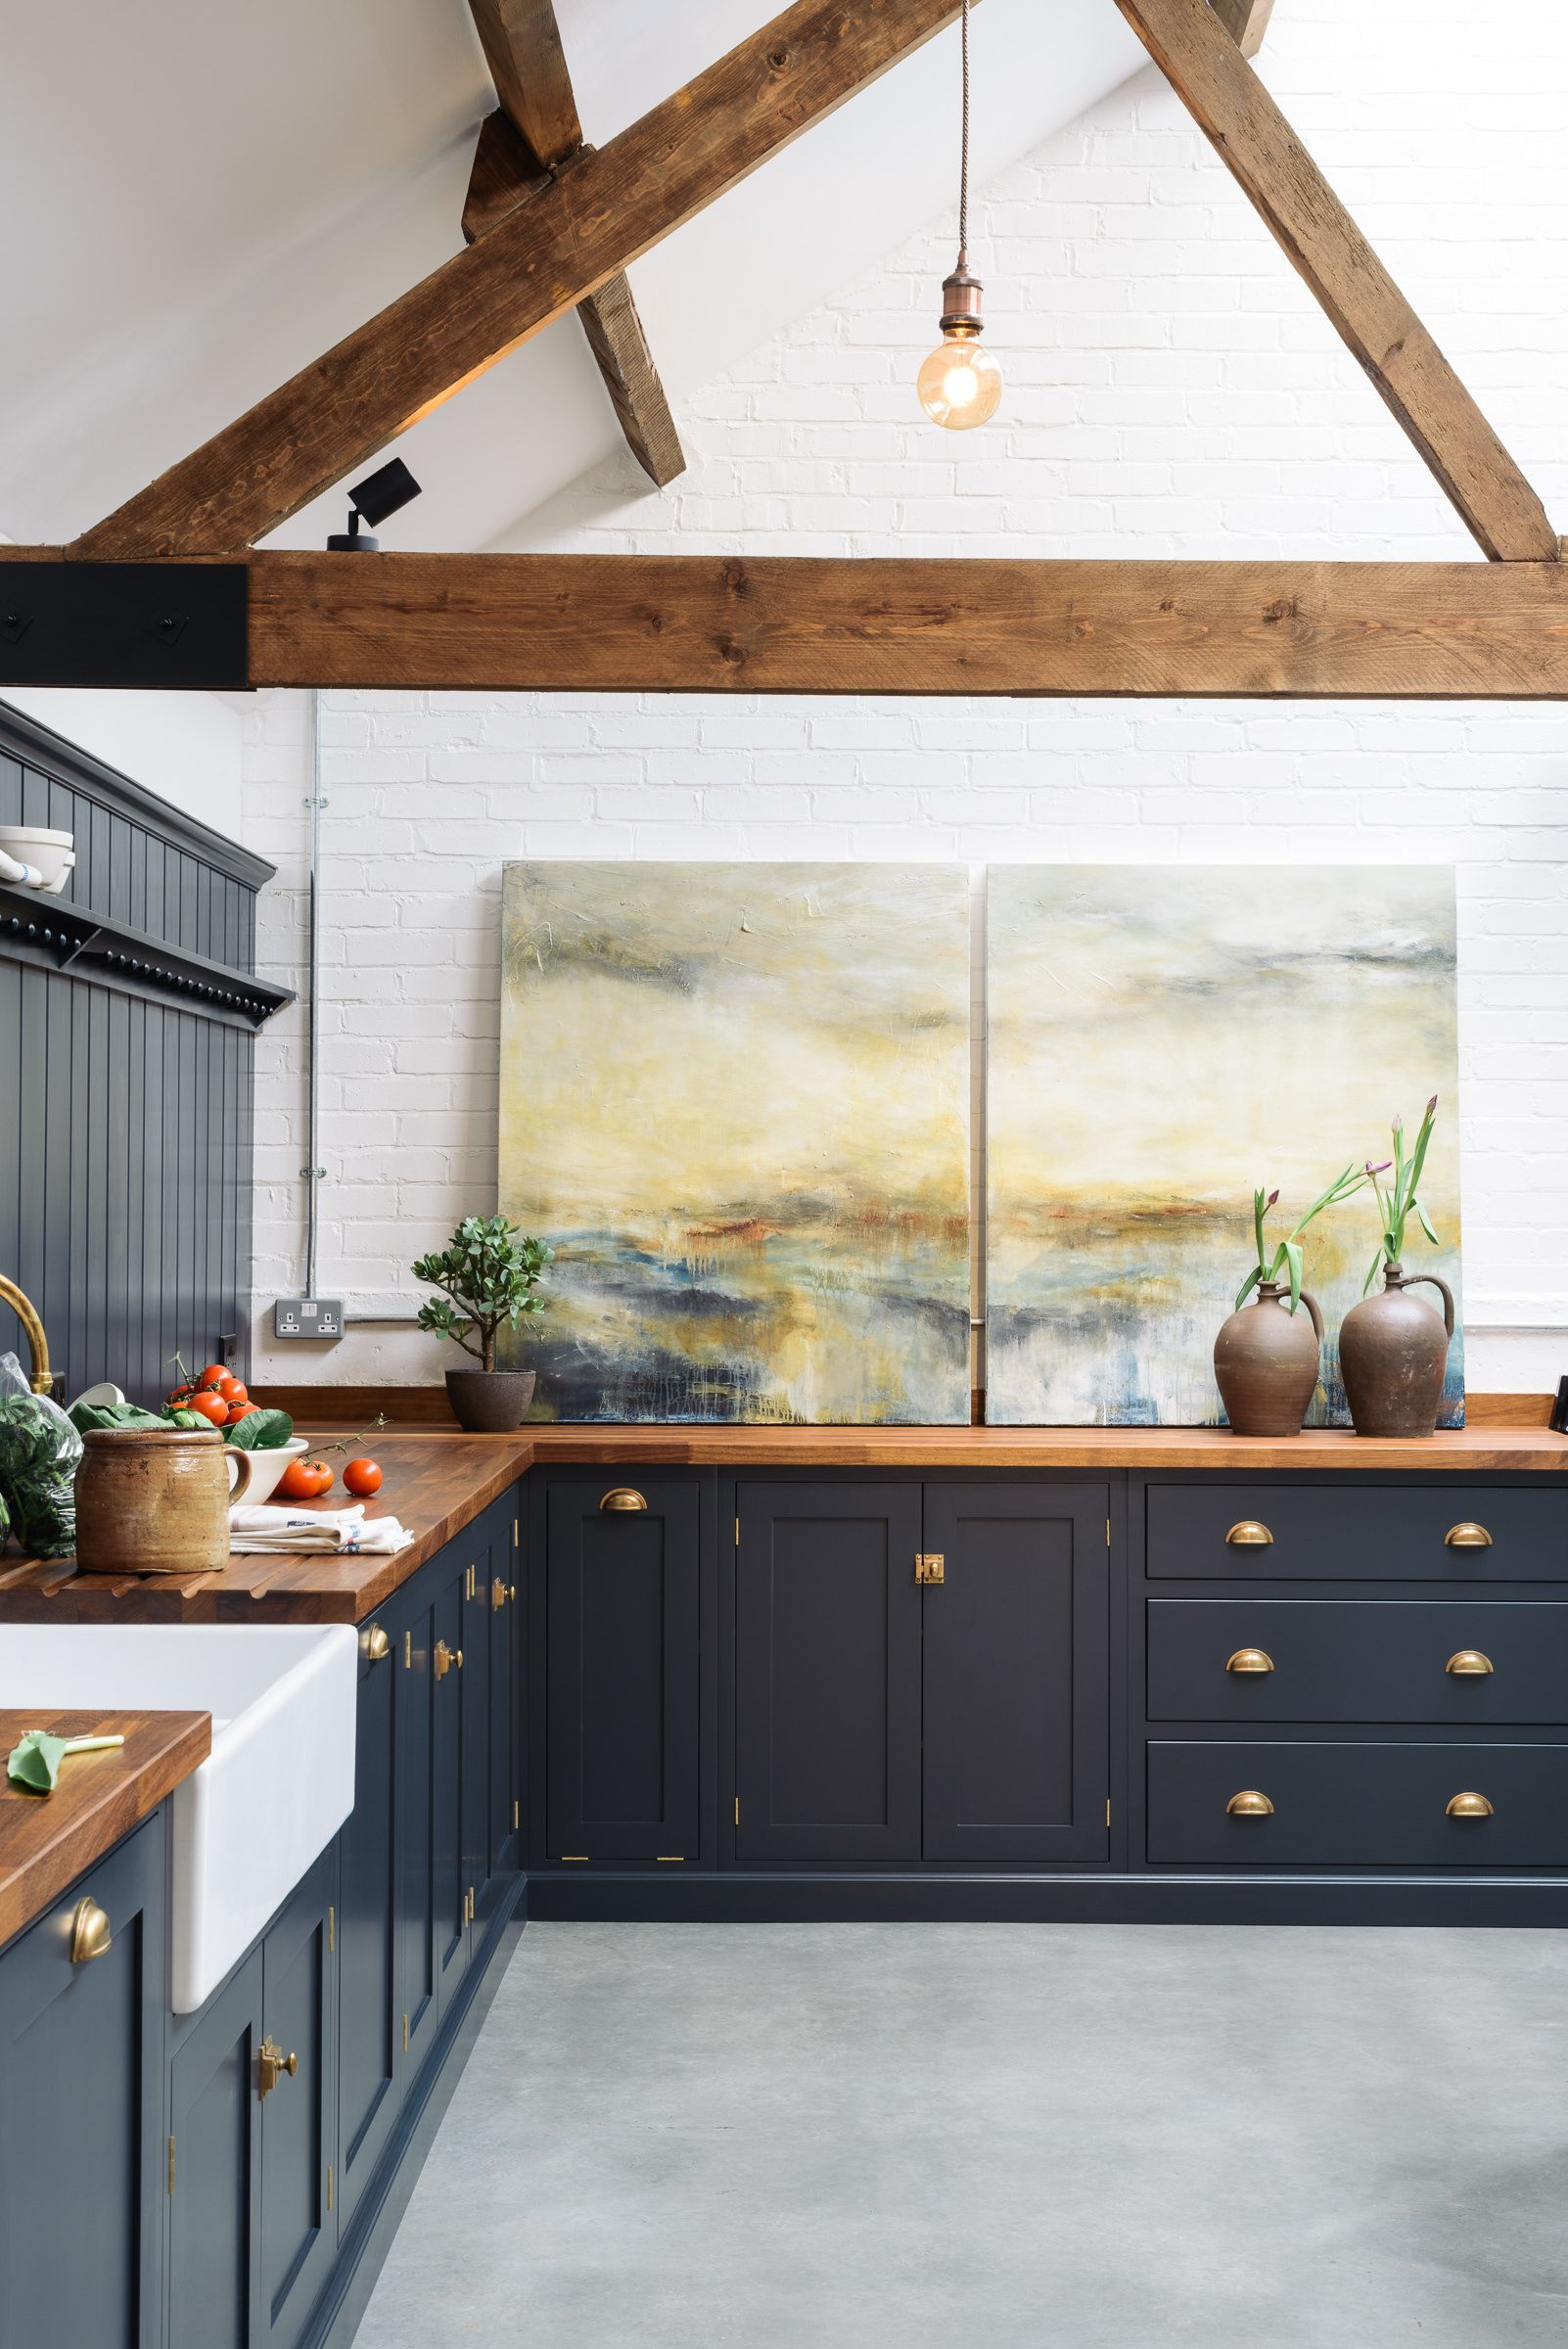 ... Kitchen Is Huge And Yet It Still Seems To Feel Comfortable And Homely  And Has The Clever Ability To Feel Both Industrial And A Little Bit Country  Chic.